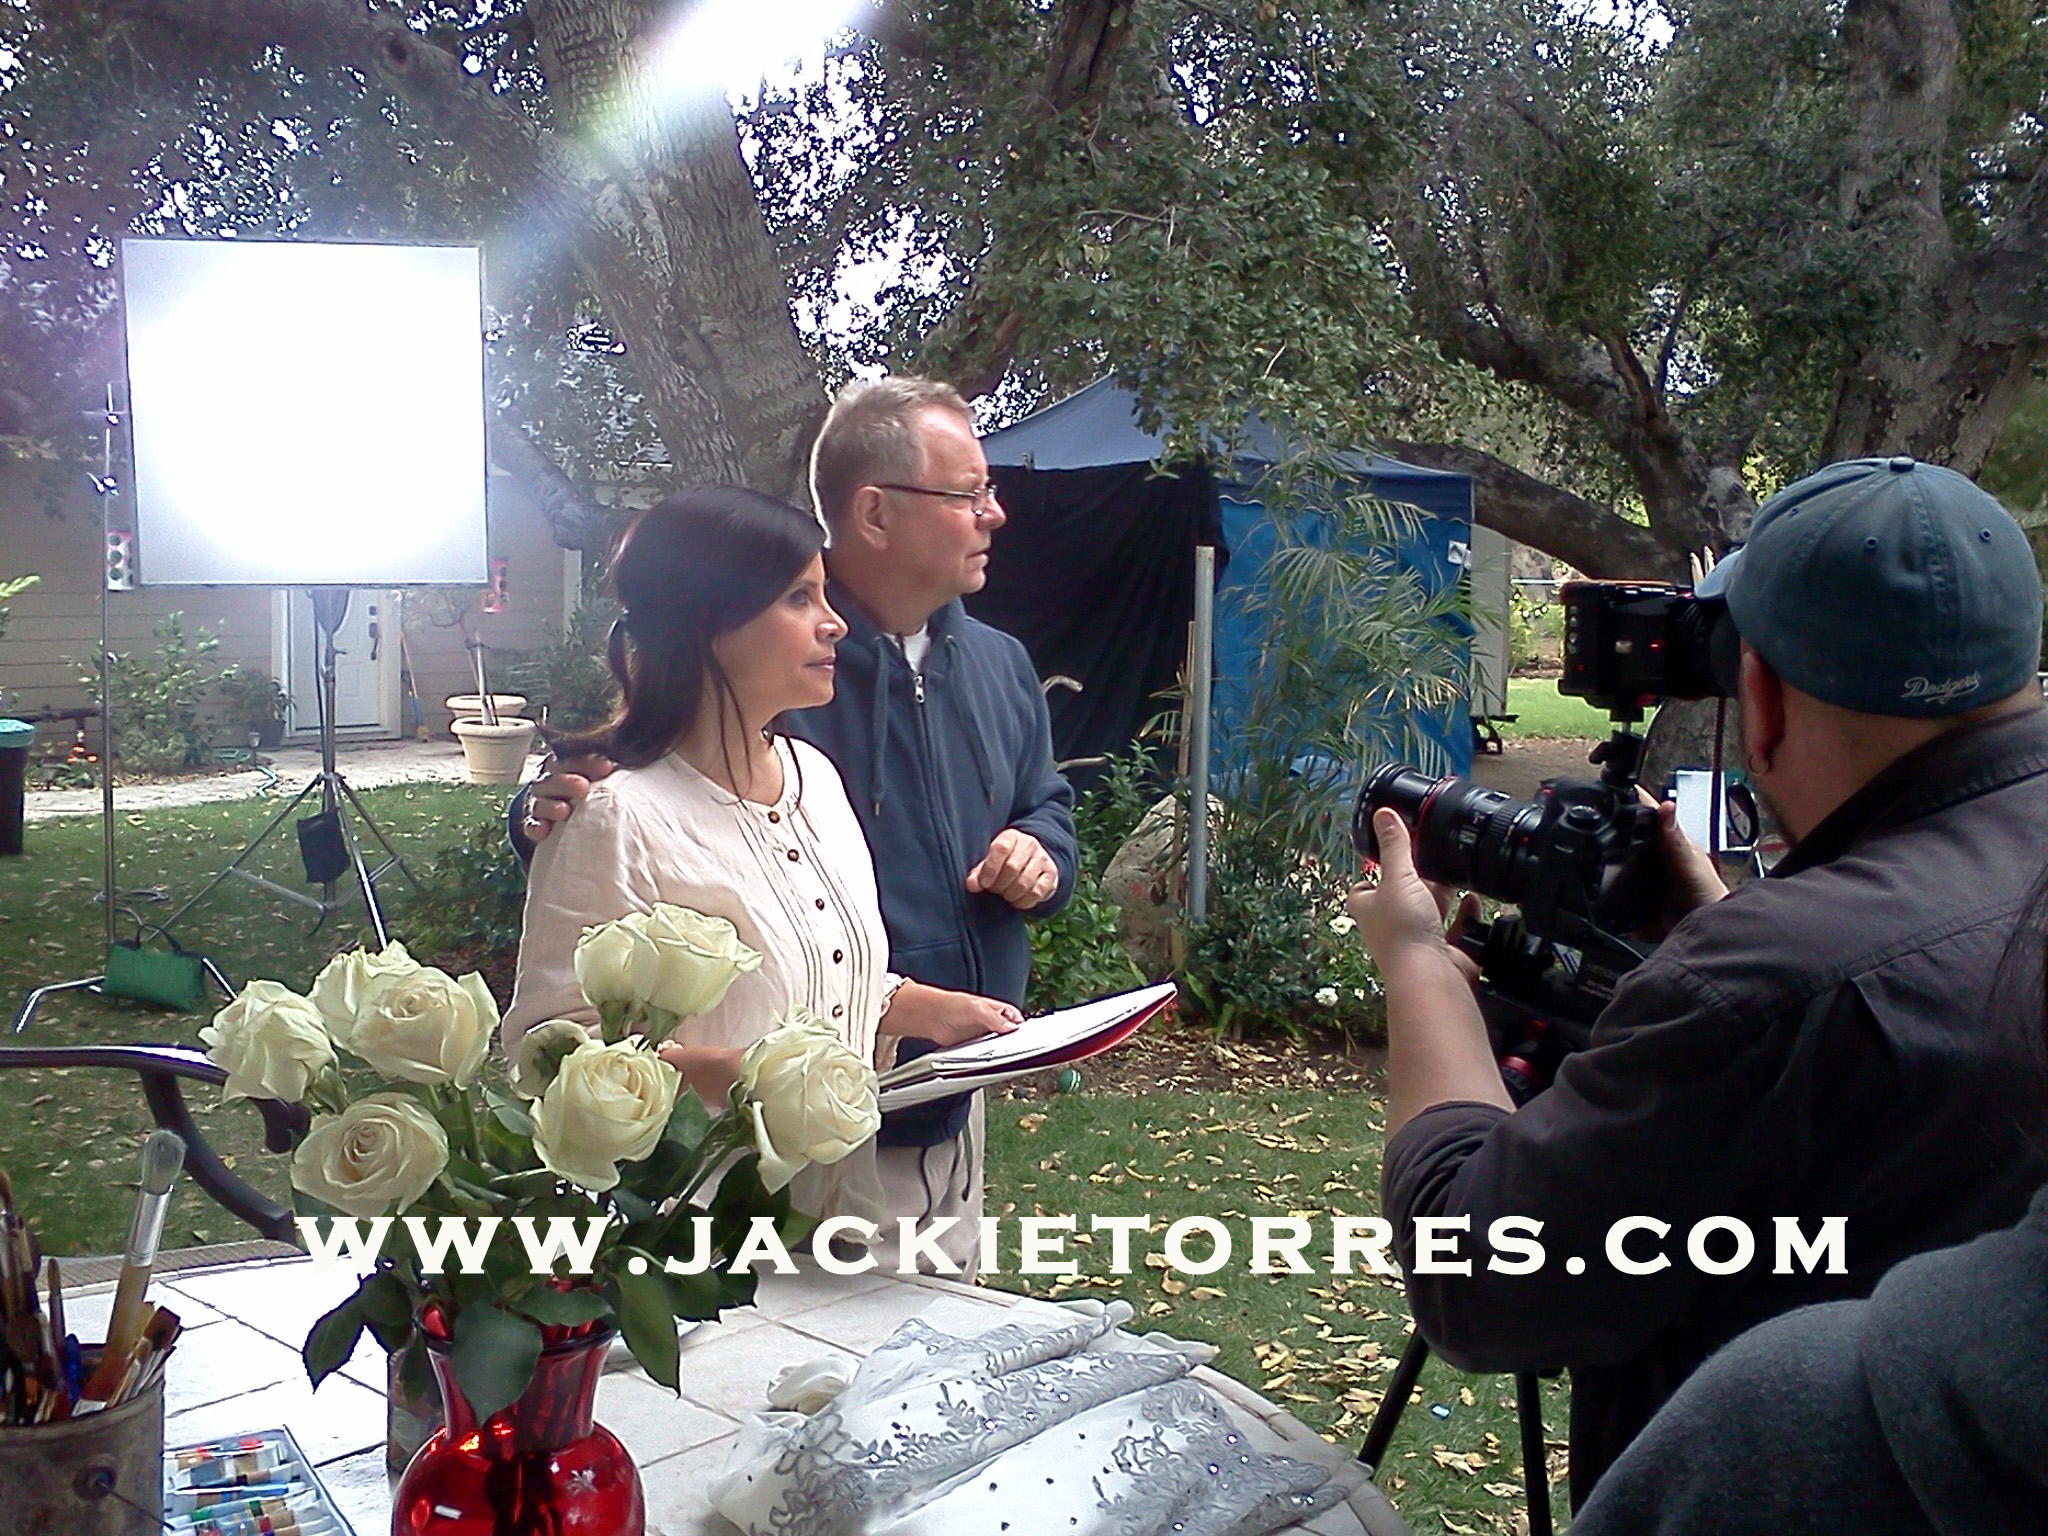 Acting classes with Jackie Torres